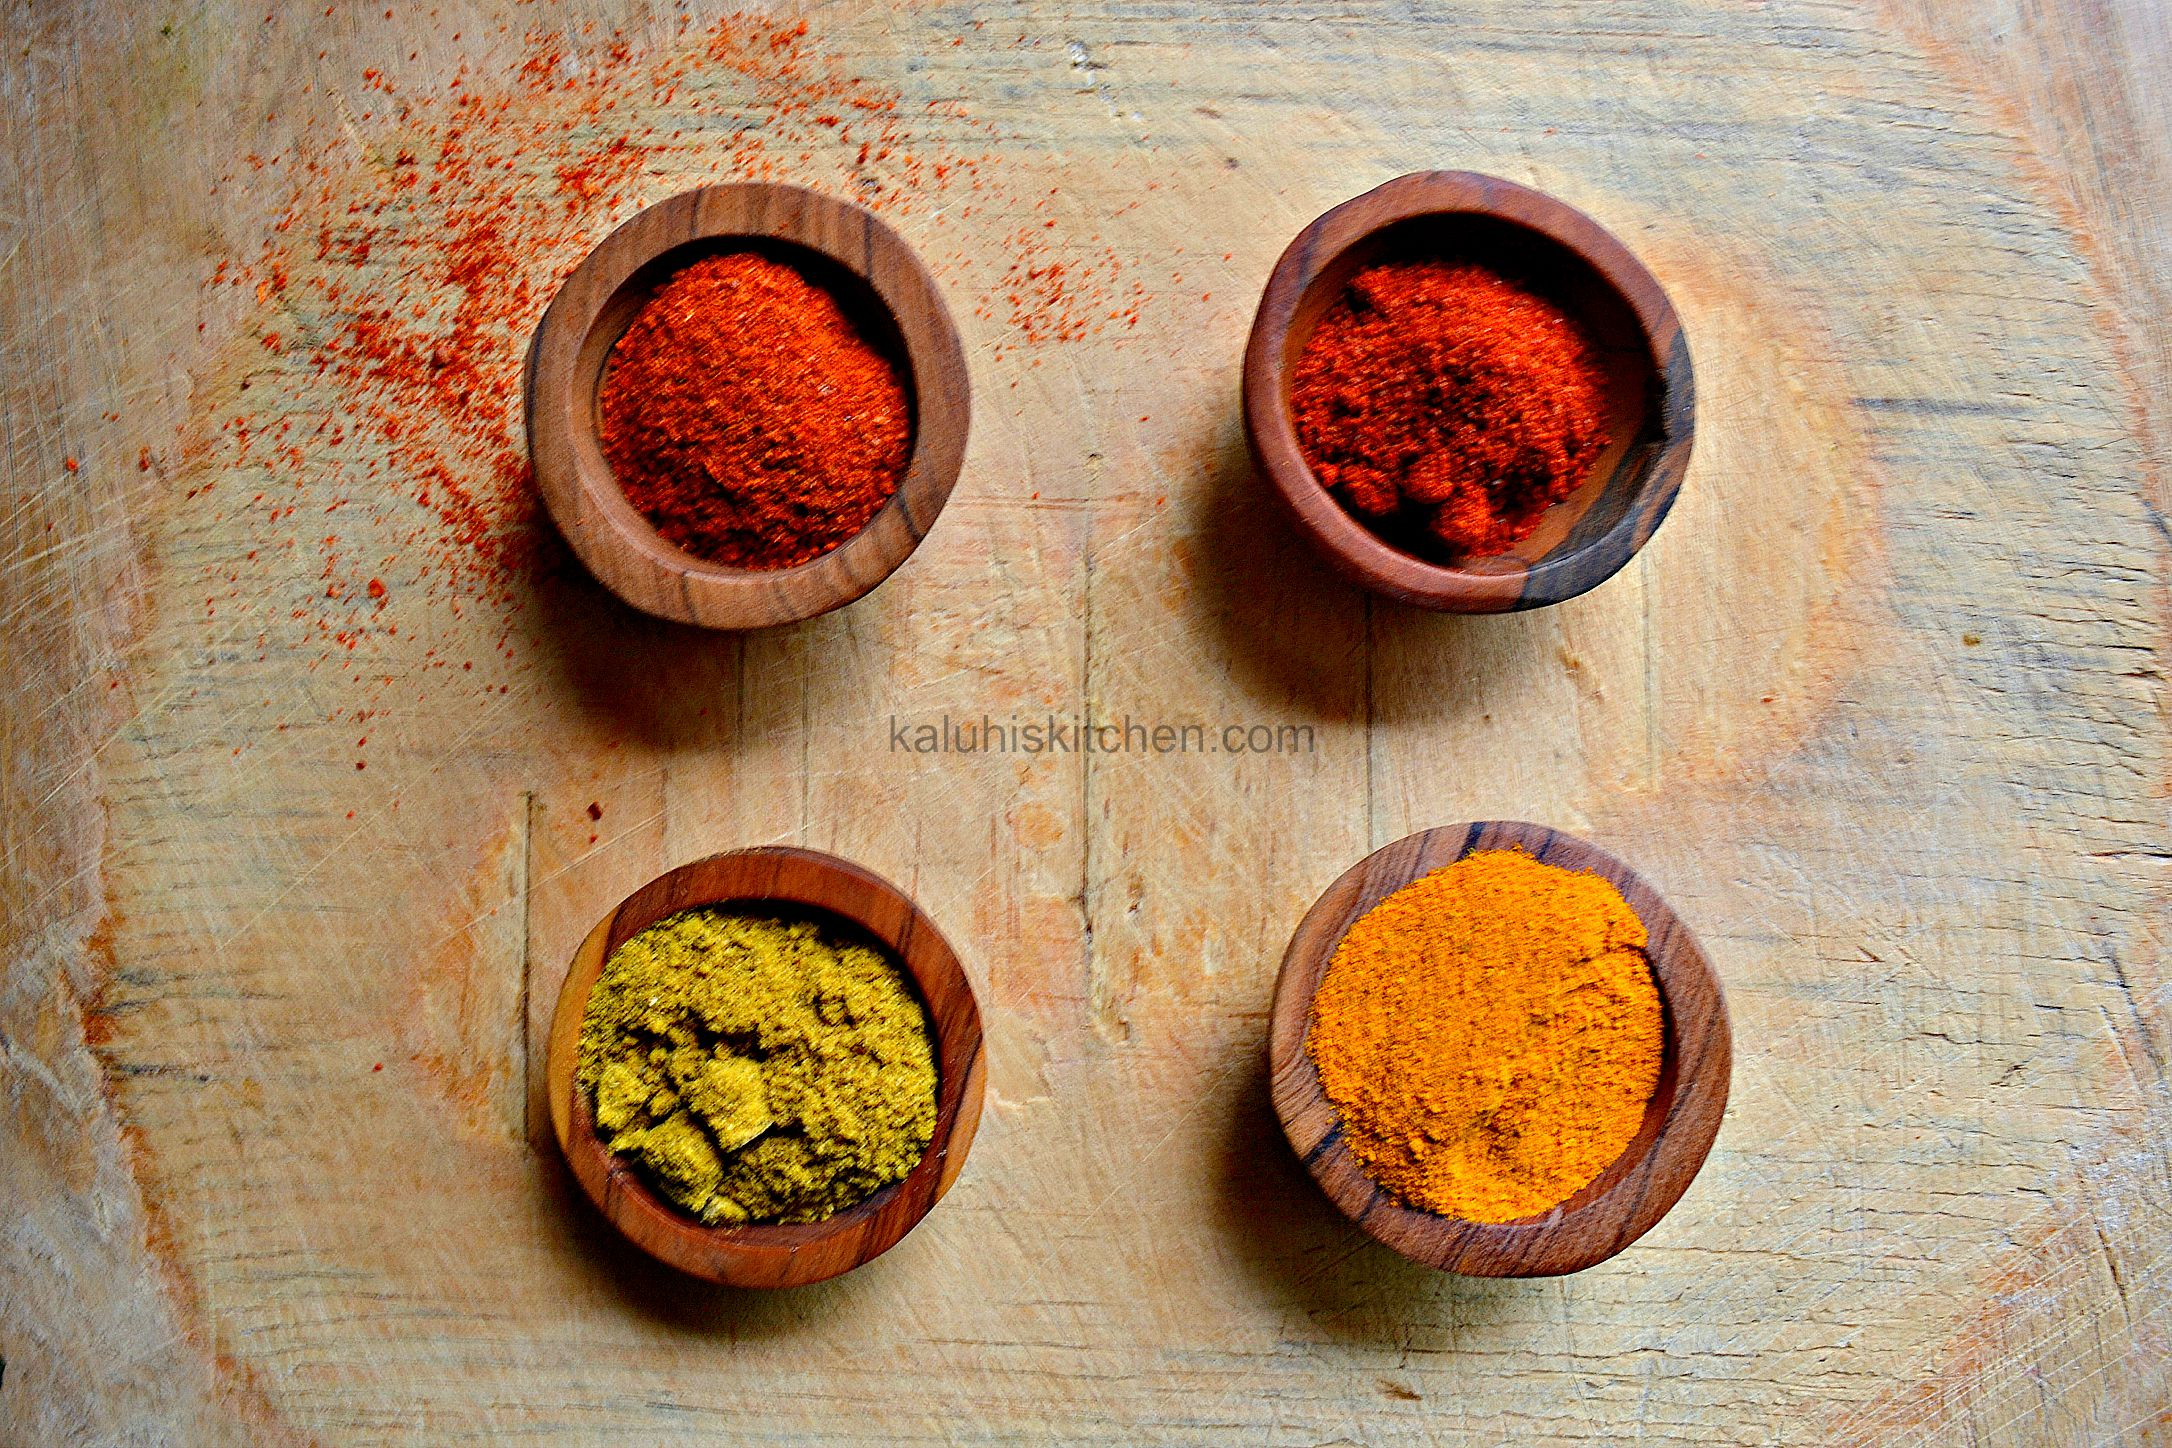 kenyan food blogs_the strongest spices in the pantry of kaluhi adagala are cayenne, chili, curry and turmeric. The first two are strong in flavor while the other two in color_kaluhiskitchen.com